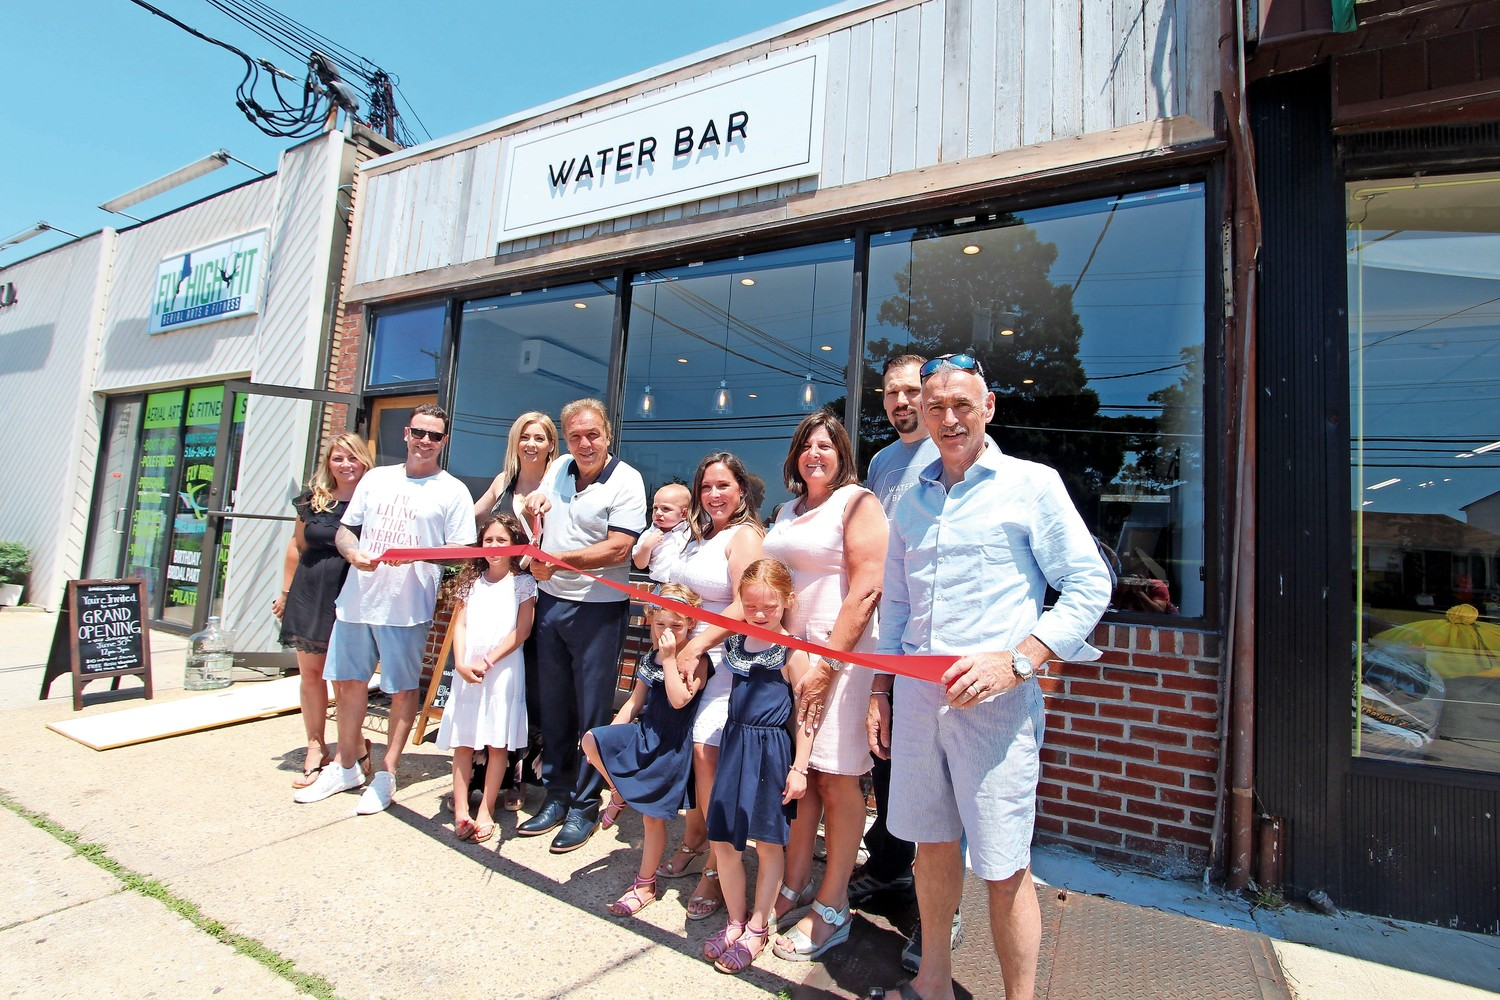 The Waterbar held their ribbon-cutting ceremony on June 30.